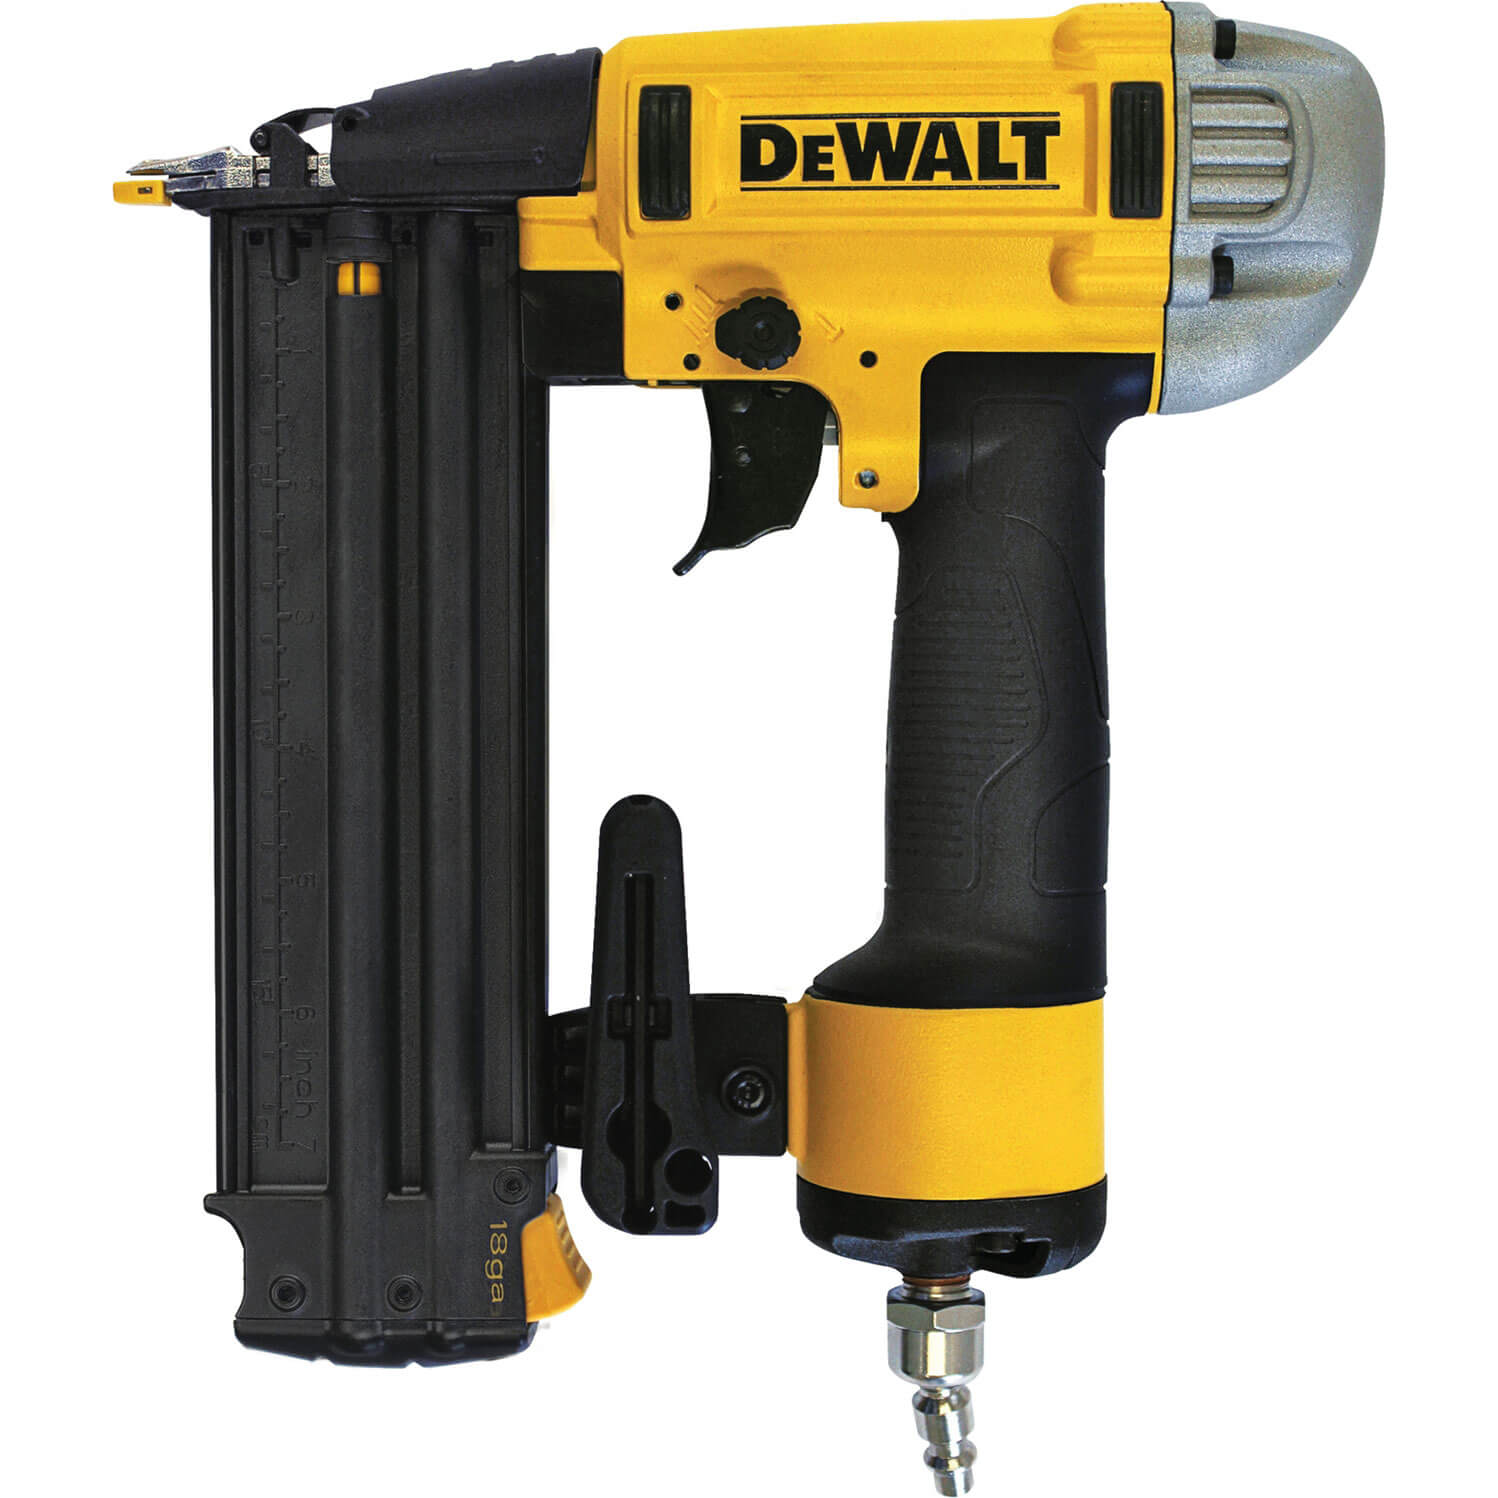 Image of DeWalt DPN1850 Postive Placement Brad Air Nail Gun